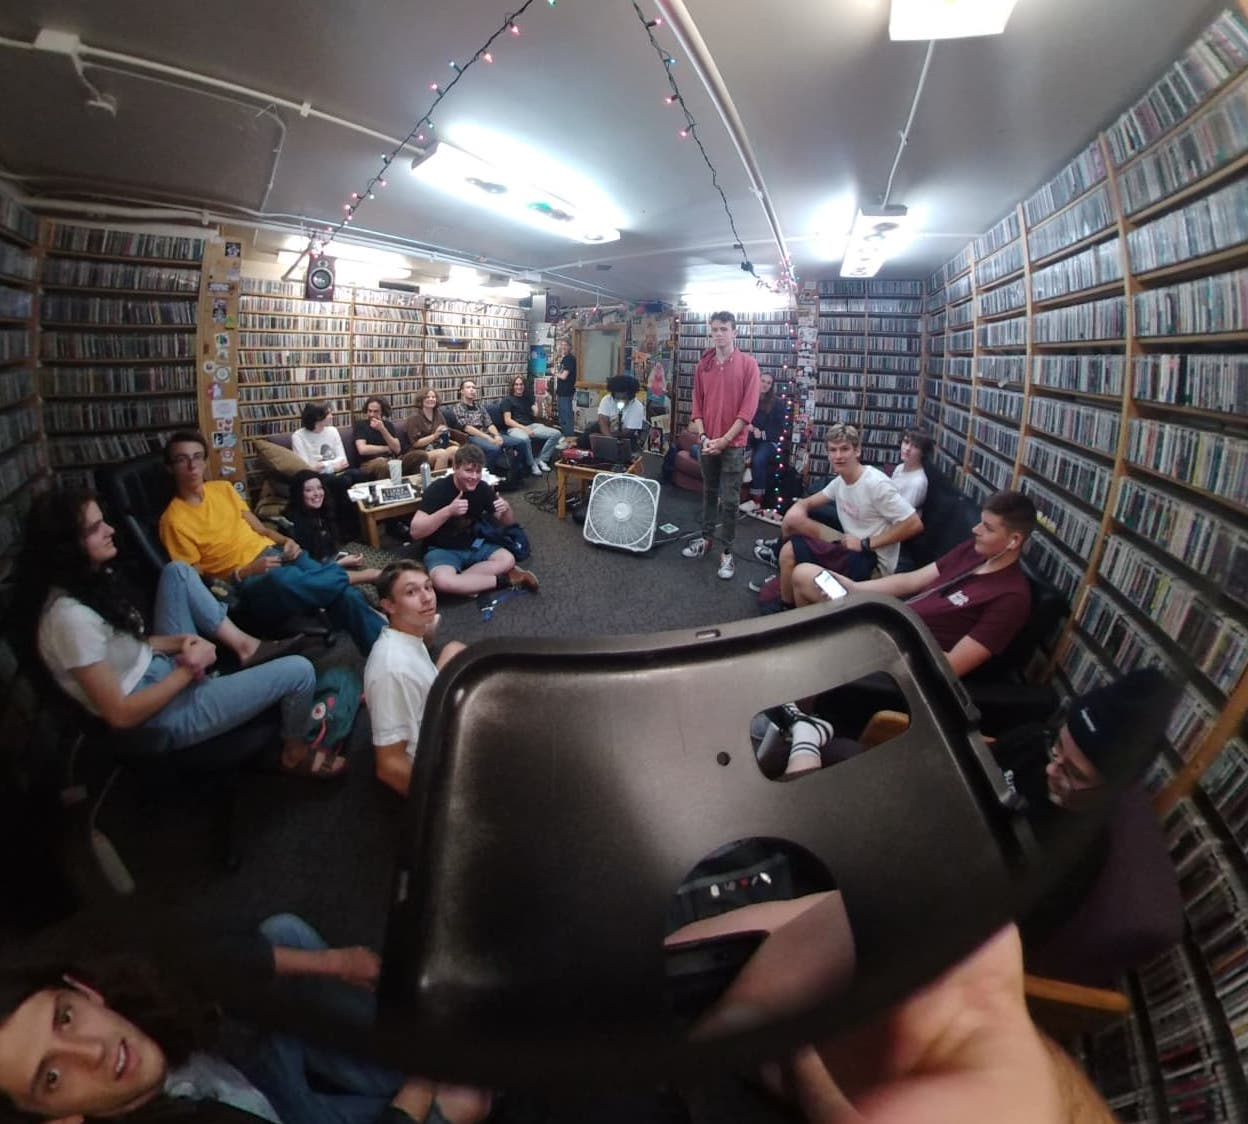 360-degree photo from one of our September Volunteer Meetings, taken by Karsten Shtanko.